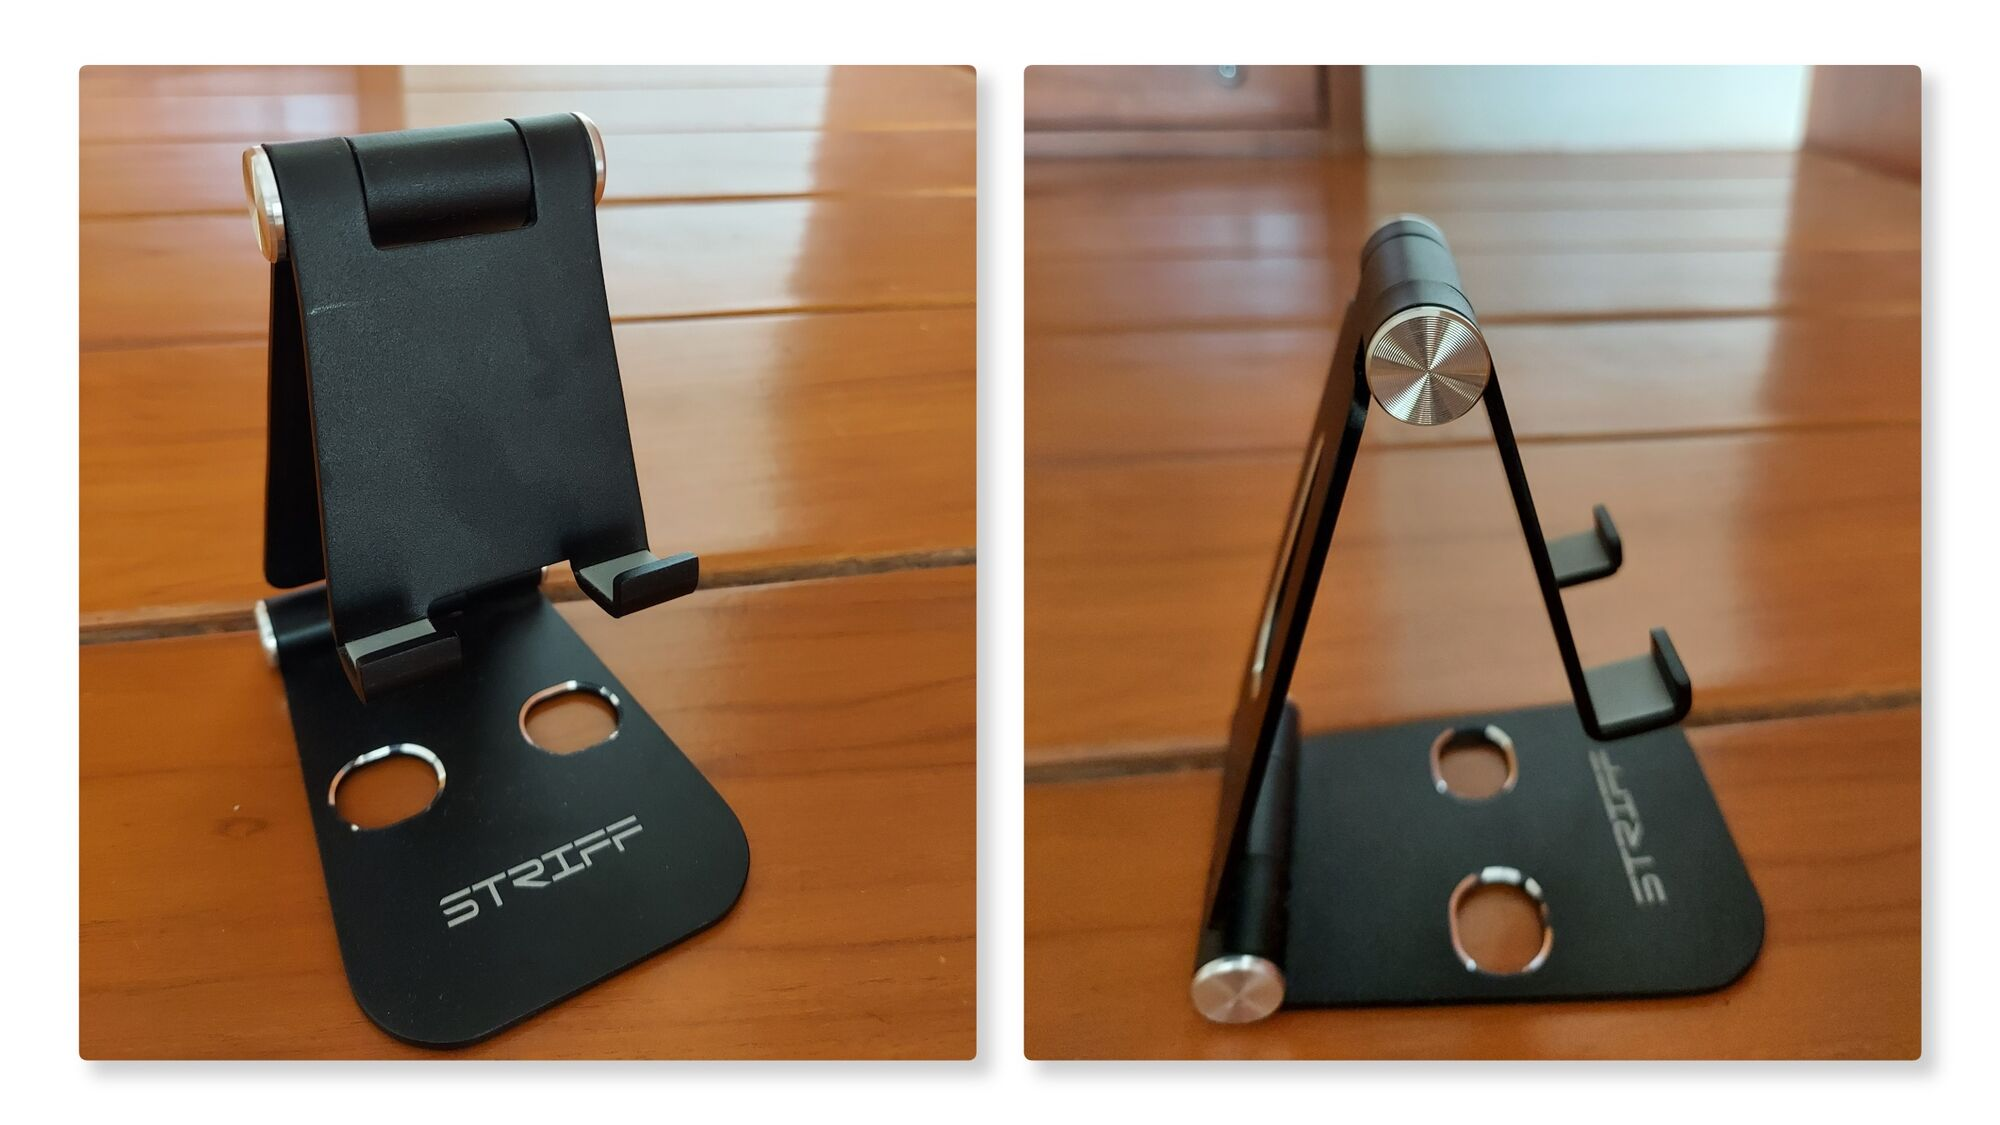 Aluminum Mobile Phone Adjustable Foldable Holder Stand for All Tablet and Smartphones